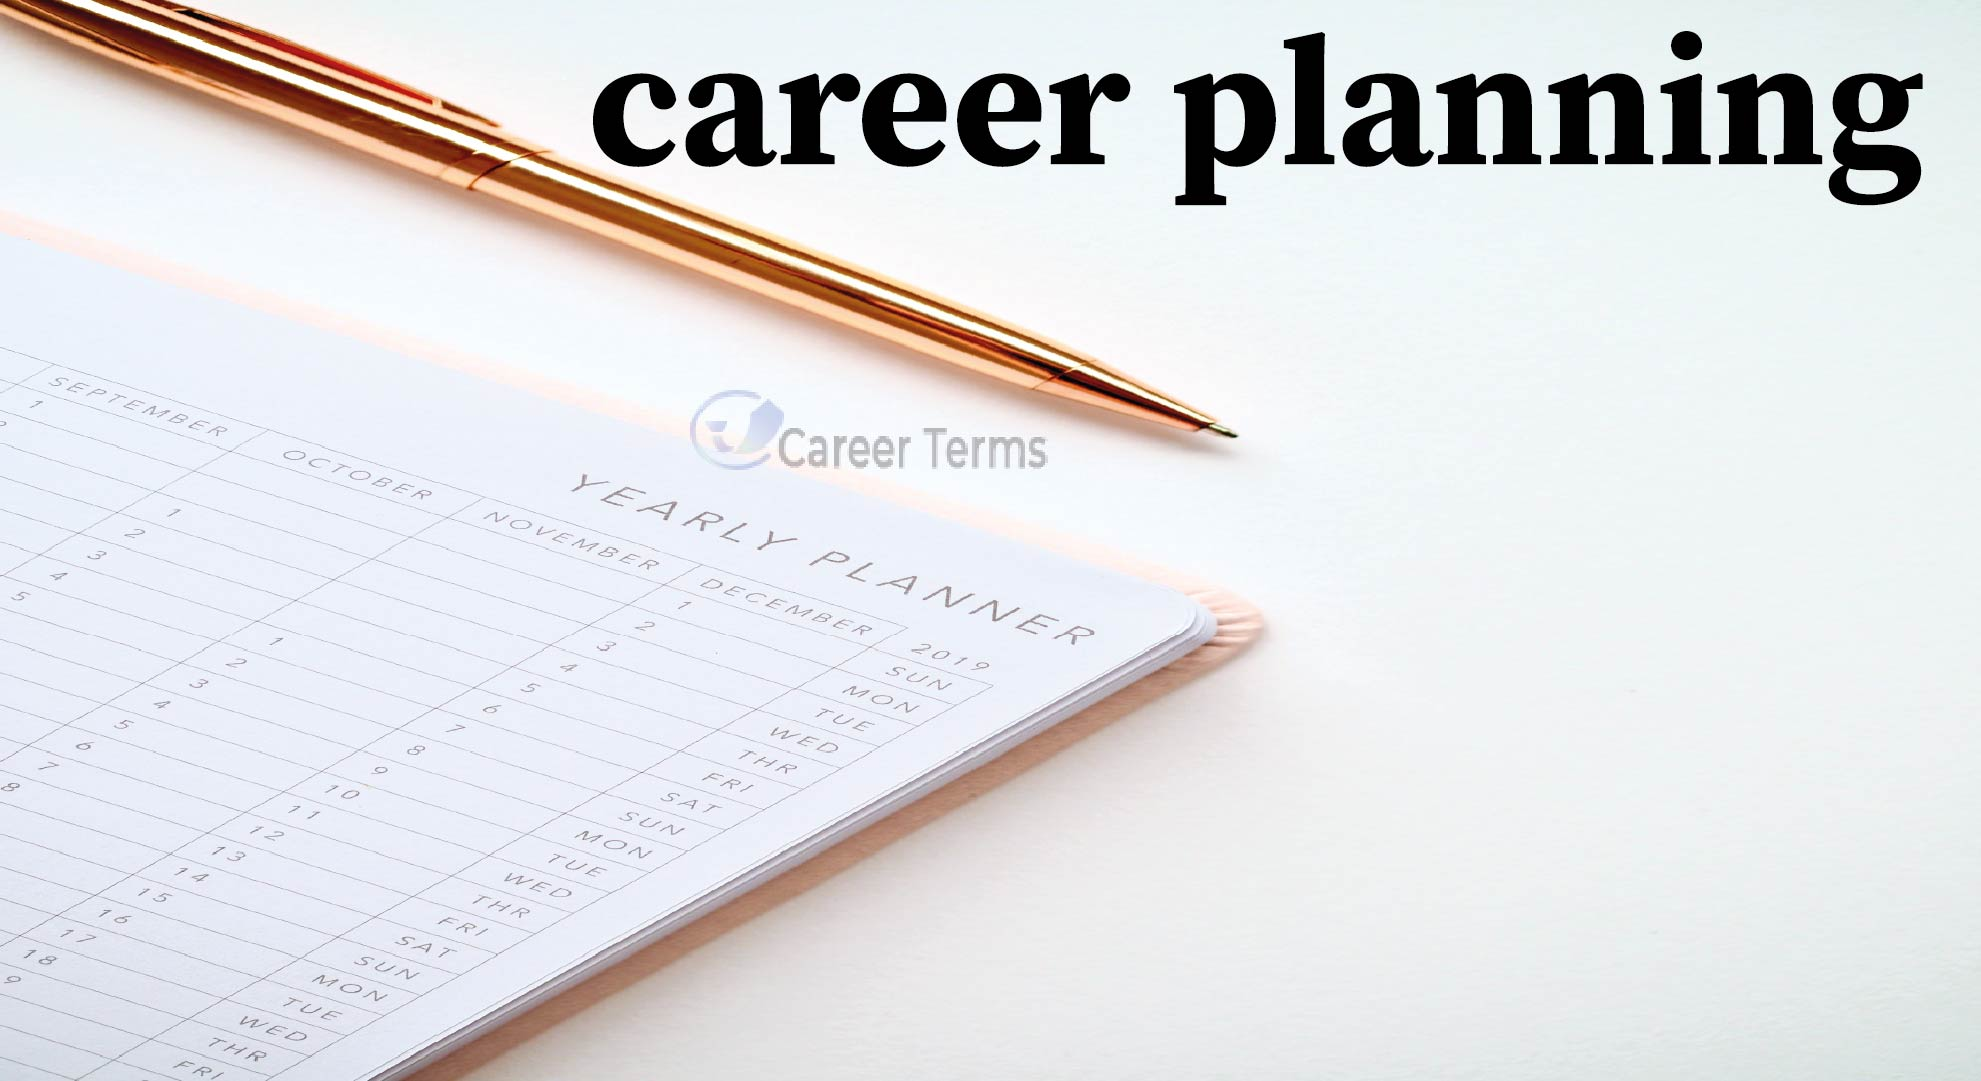 pros and cons of career planning